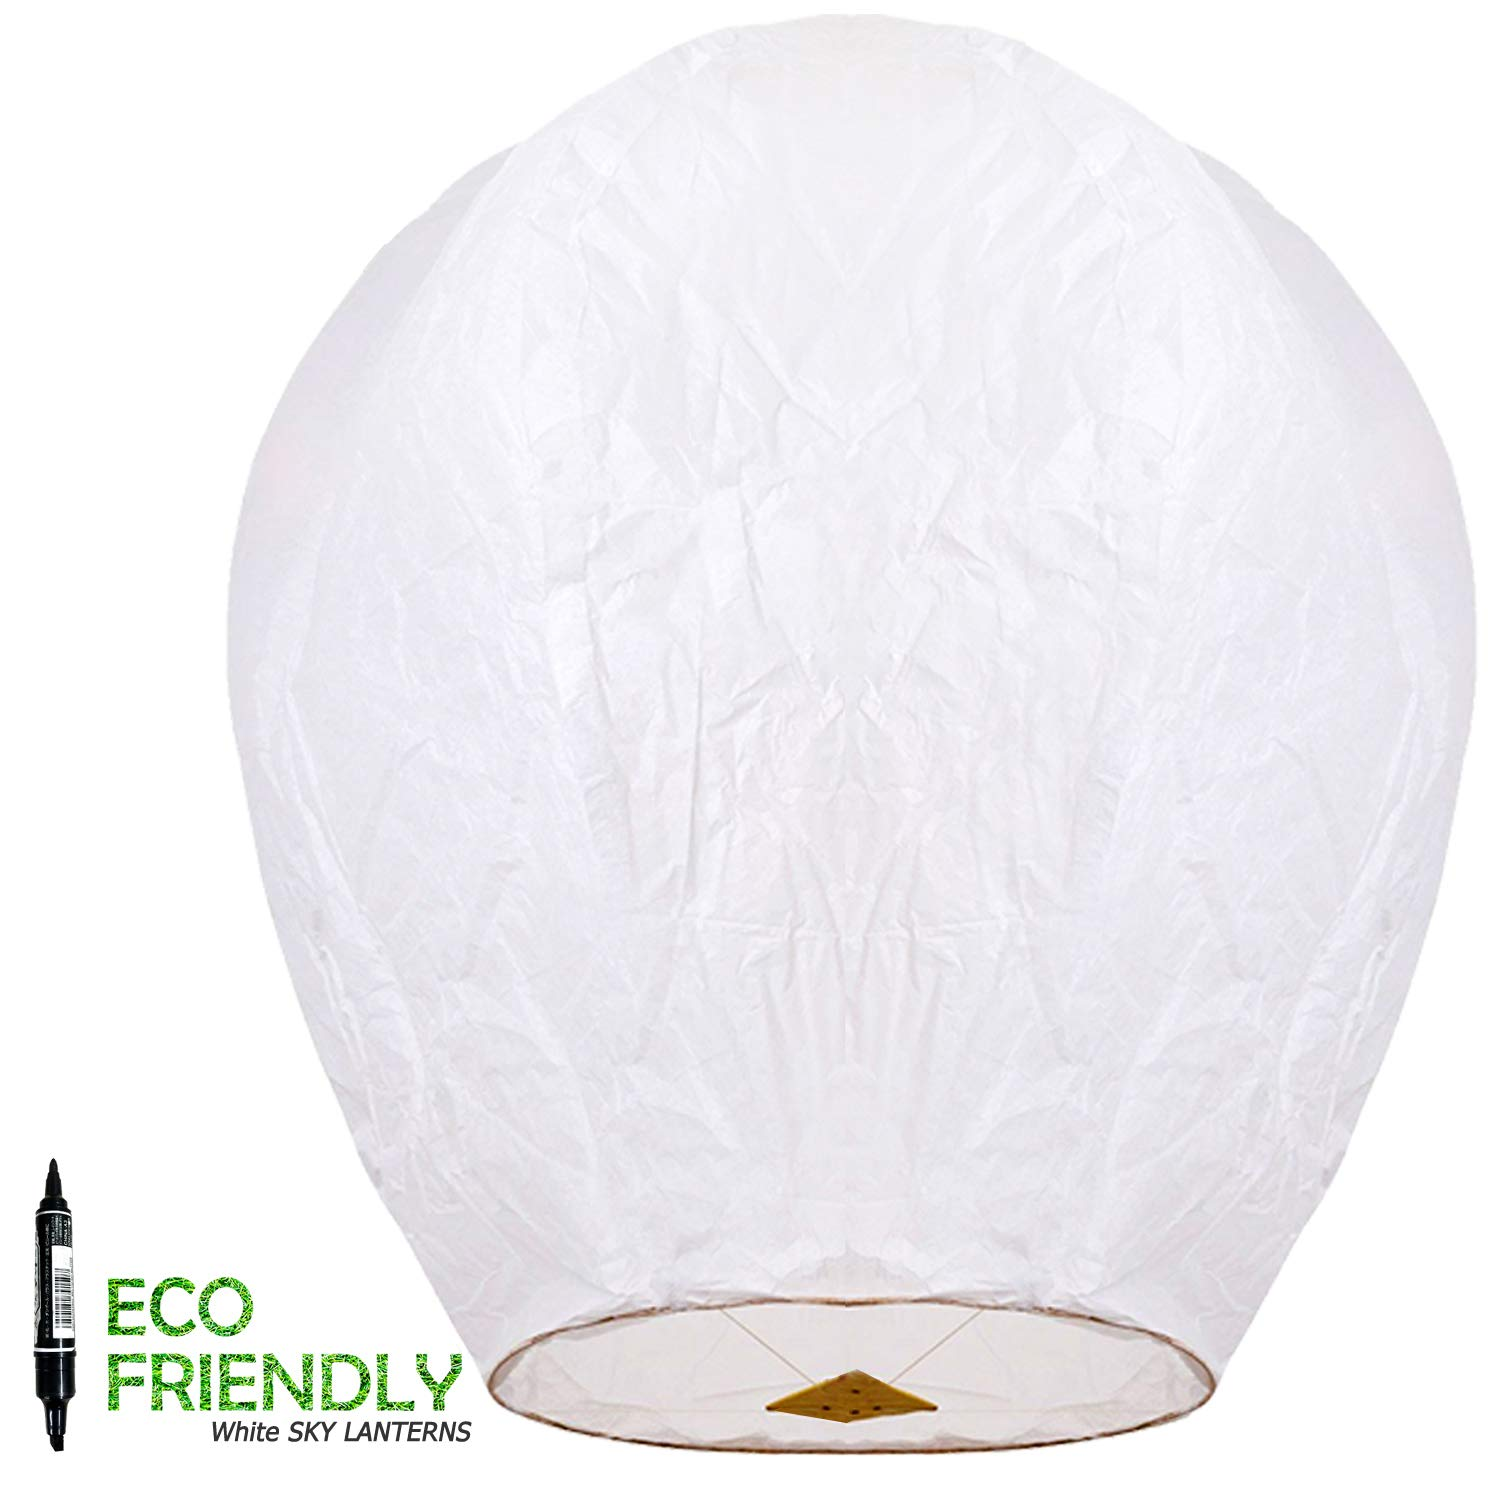 Chinese Lanterns & Sky Lanterns ECO Friendly - 100% Biodegradable - Beautiful Lantern for White for Weddings, Birthdays, Memorials and Much More (5 Pack)